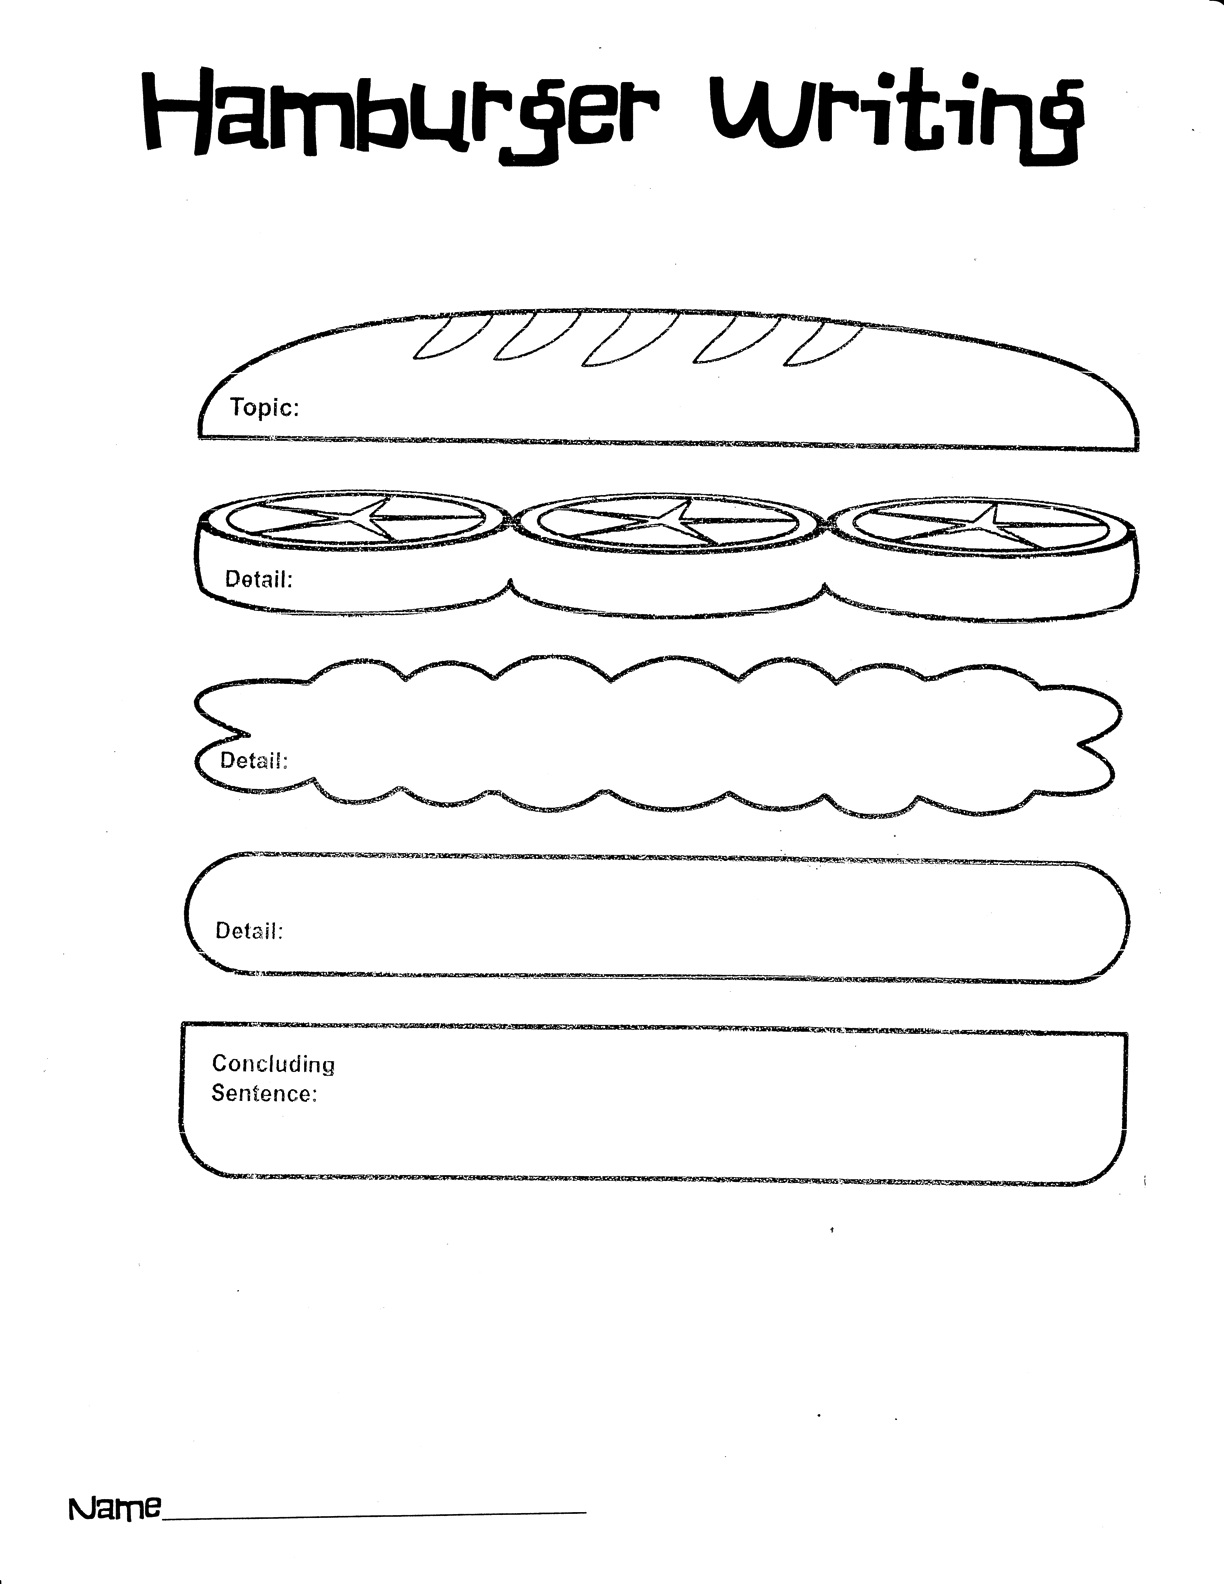 Homework clipart writing story Writing collection Hamburger download free